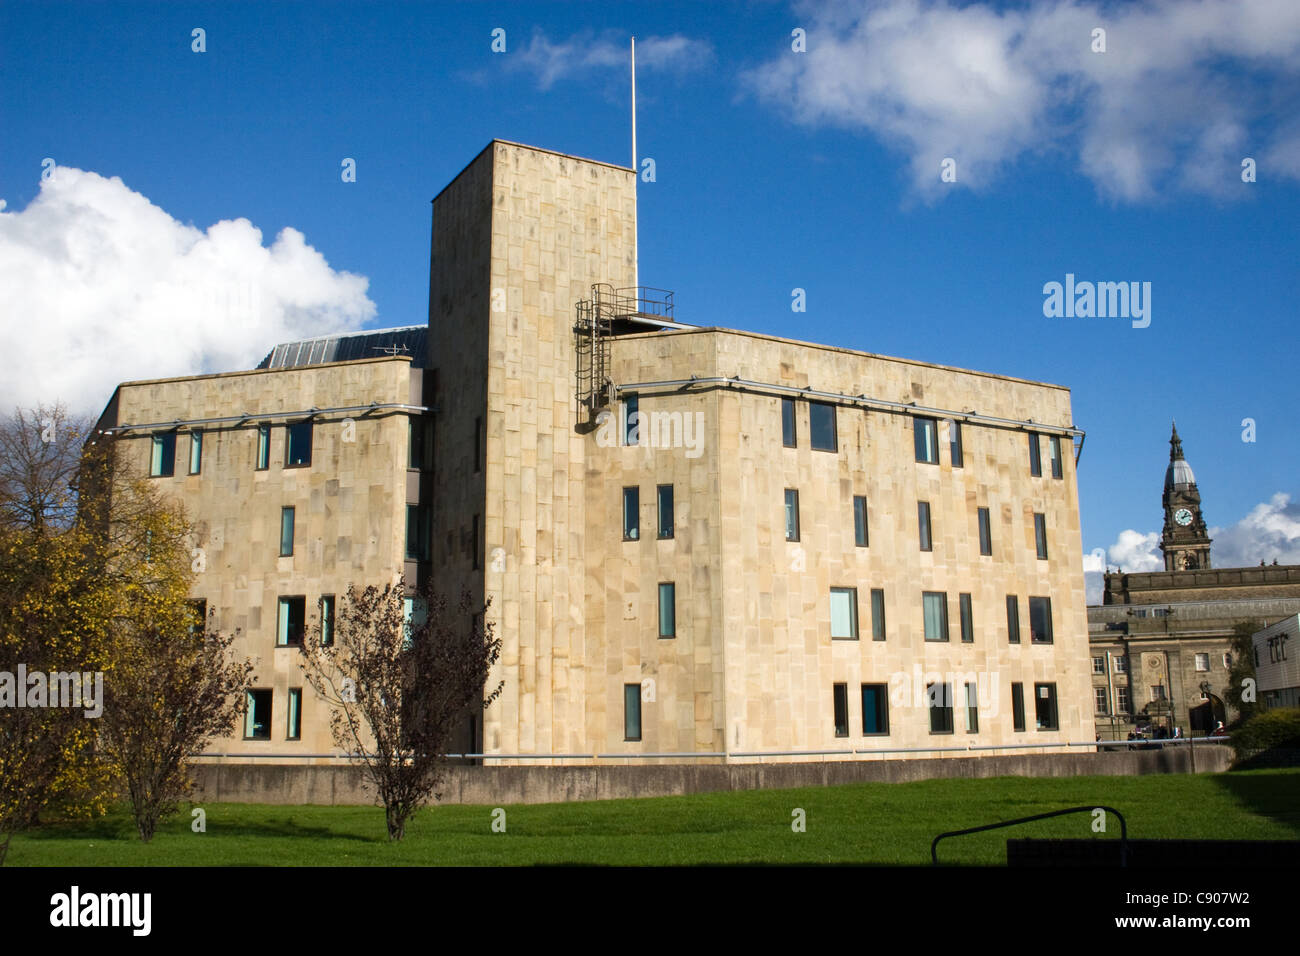 Bolton Crown Court (+ town hall beyond), Blackhorse Street, Bolton, Greater Manchester, England, UK - Stock Image